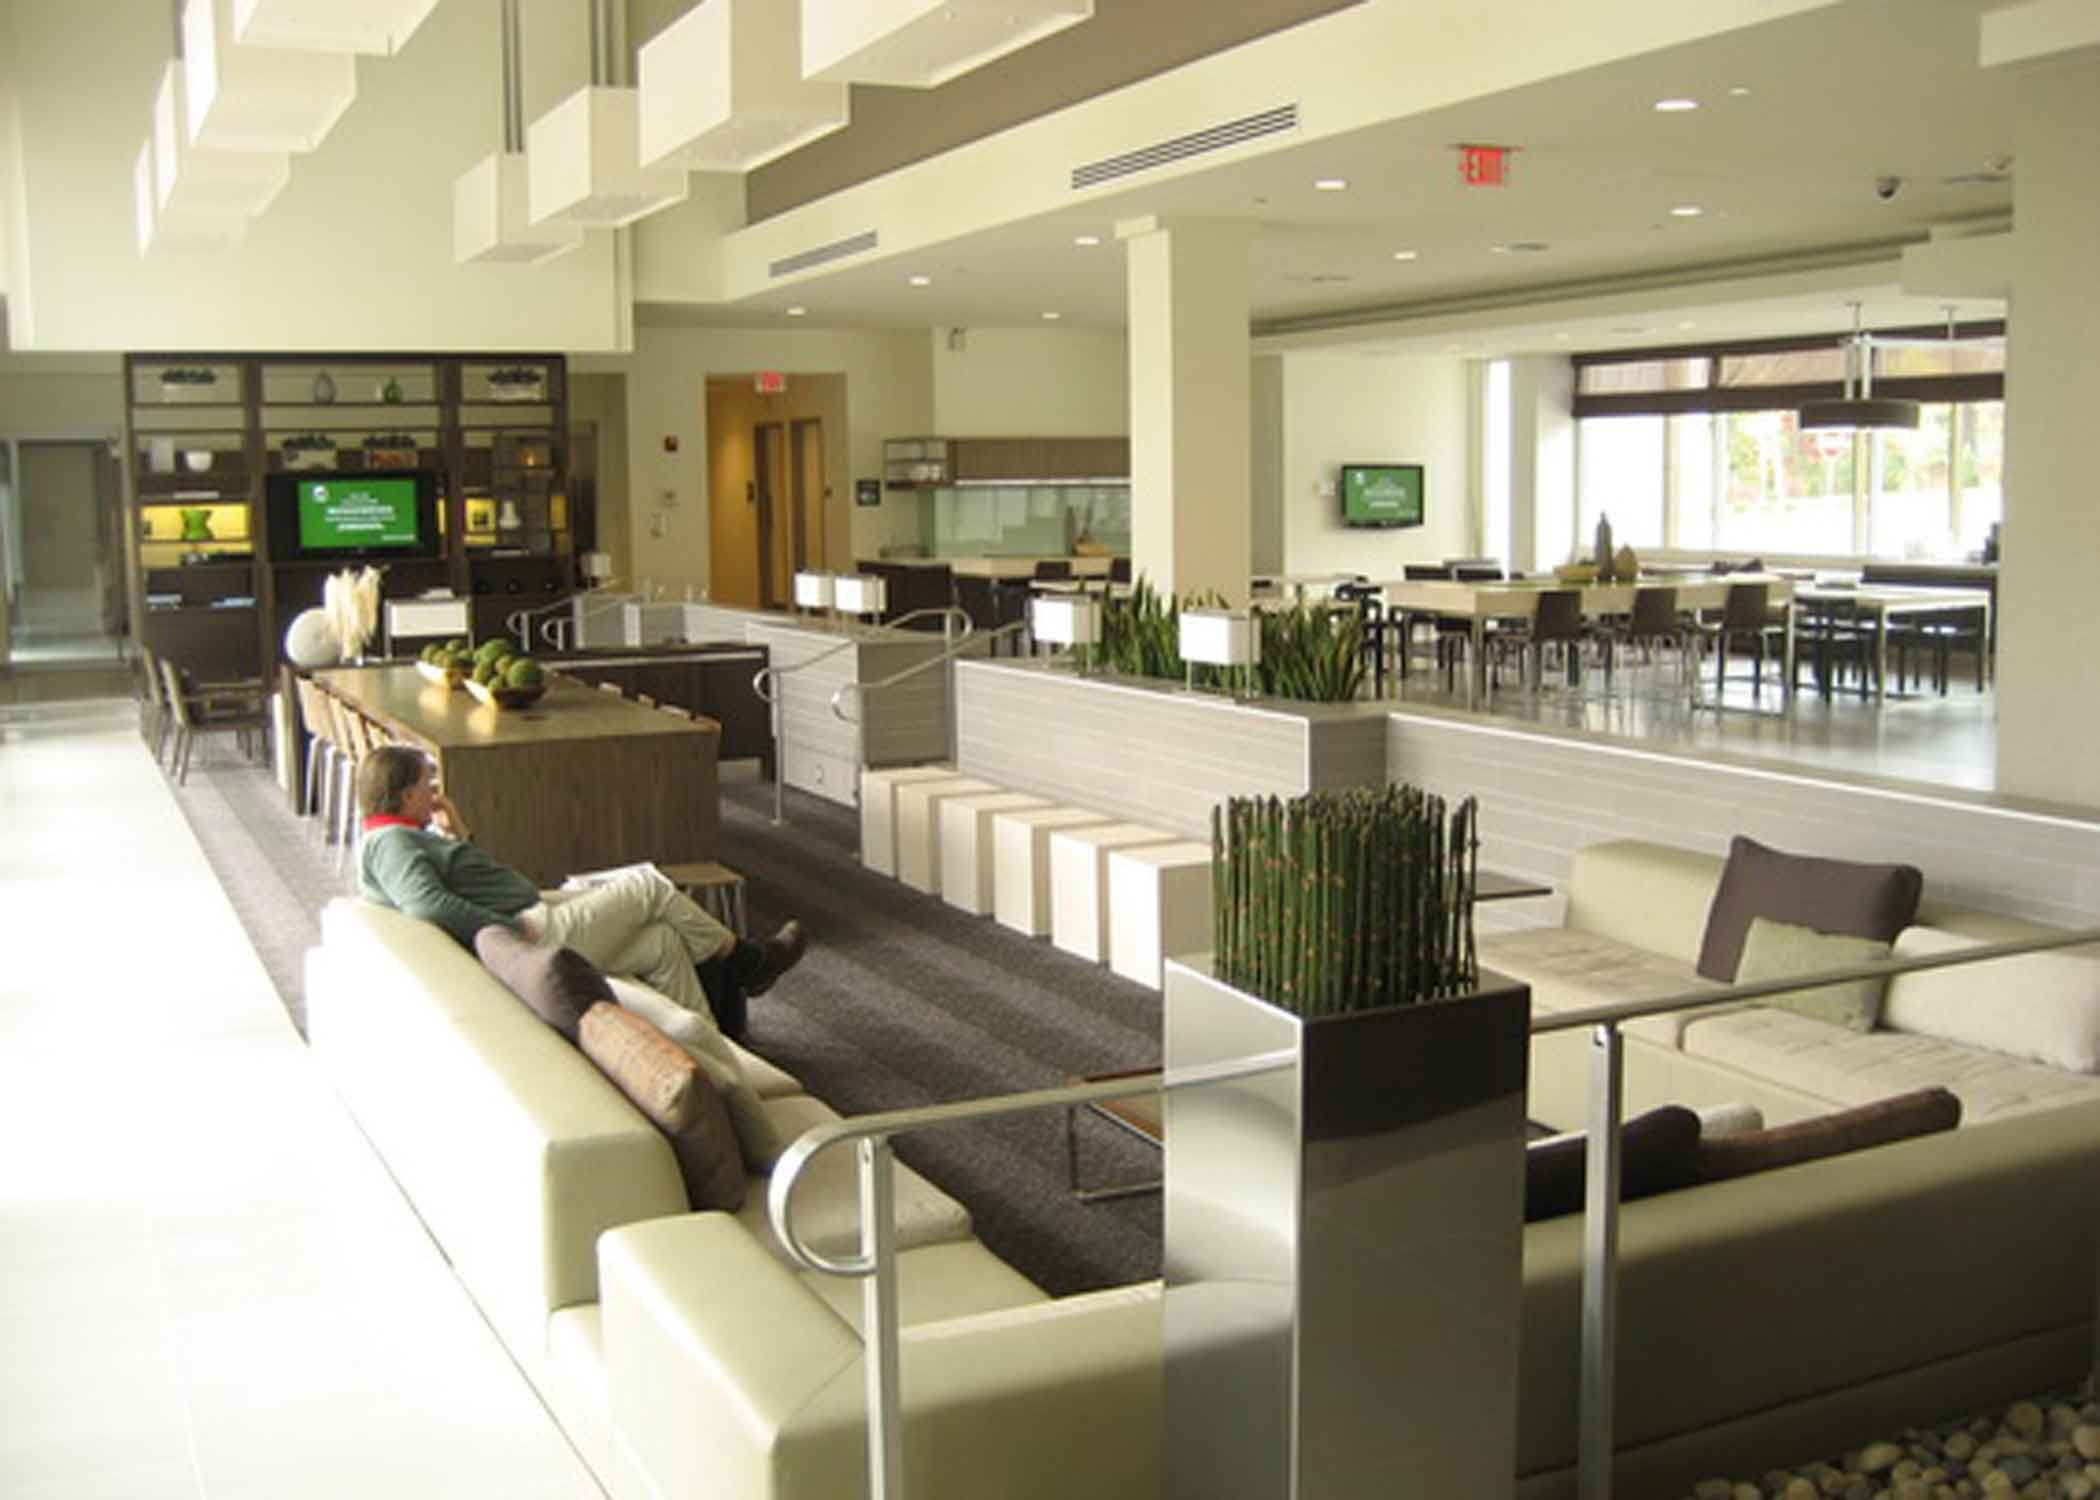 Hotel lobby furniture - Zoning Hotel Lobby And Bar Google Search